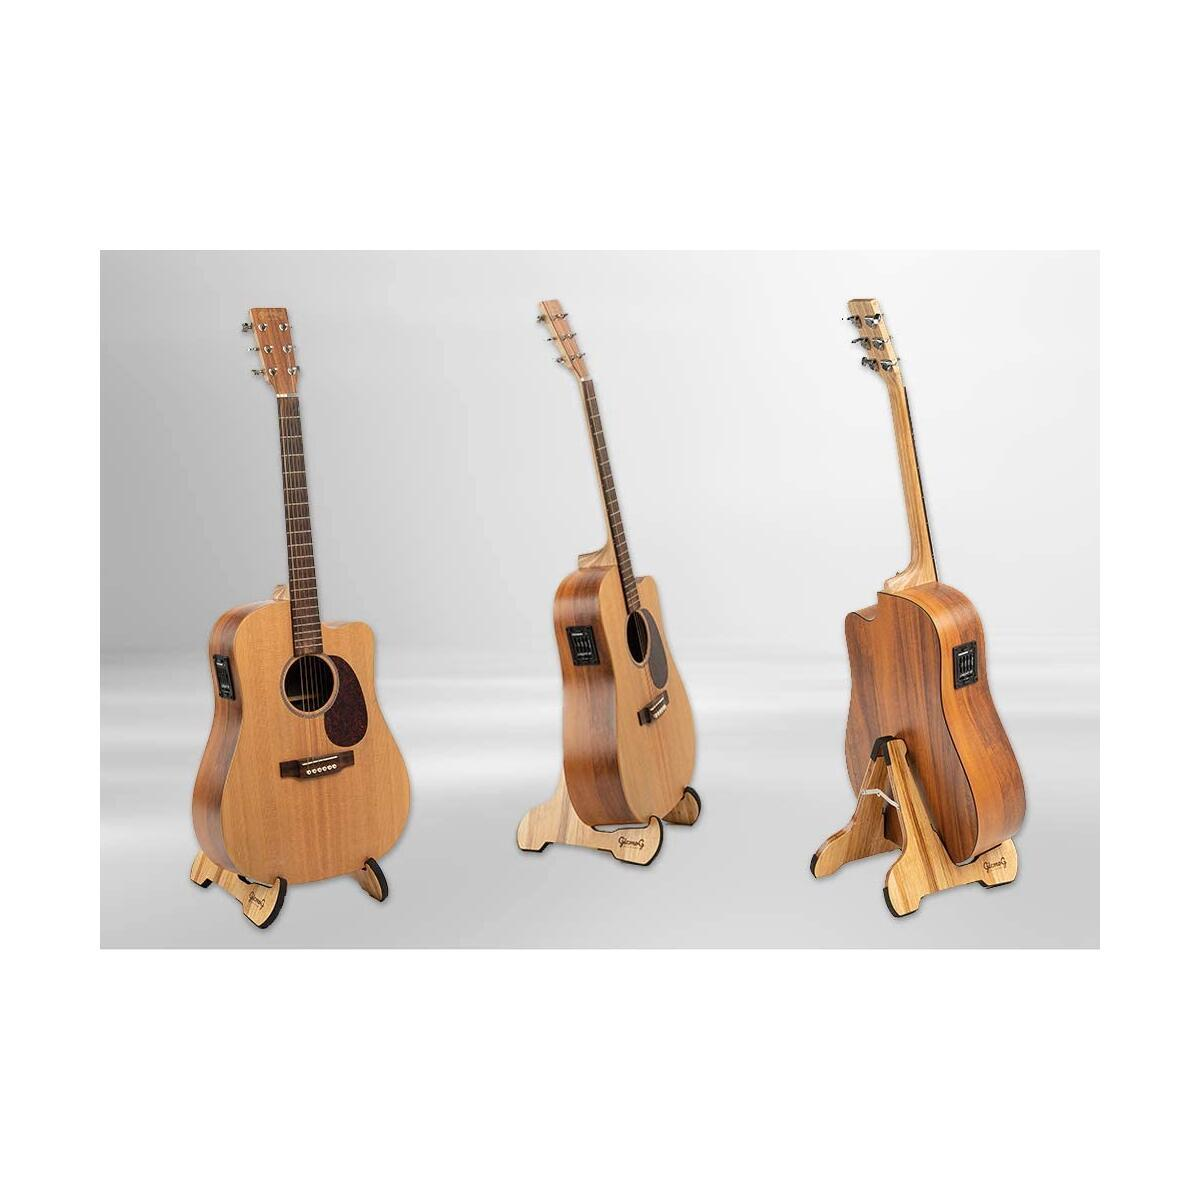 Folding Guitar Stand, Universal for Acoustic Classical Electric Bass Guitars, Strong A-Frame Timber Design